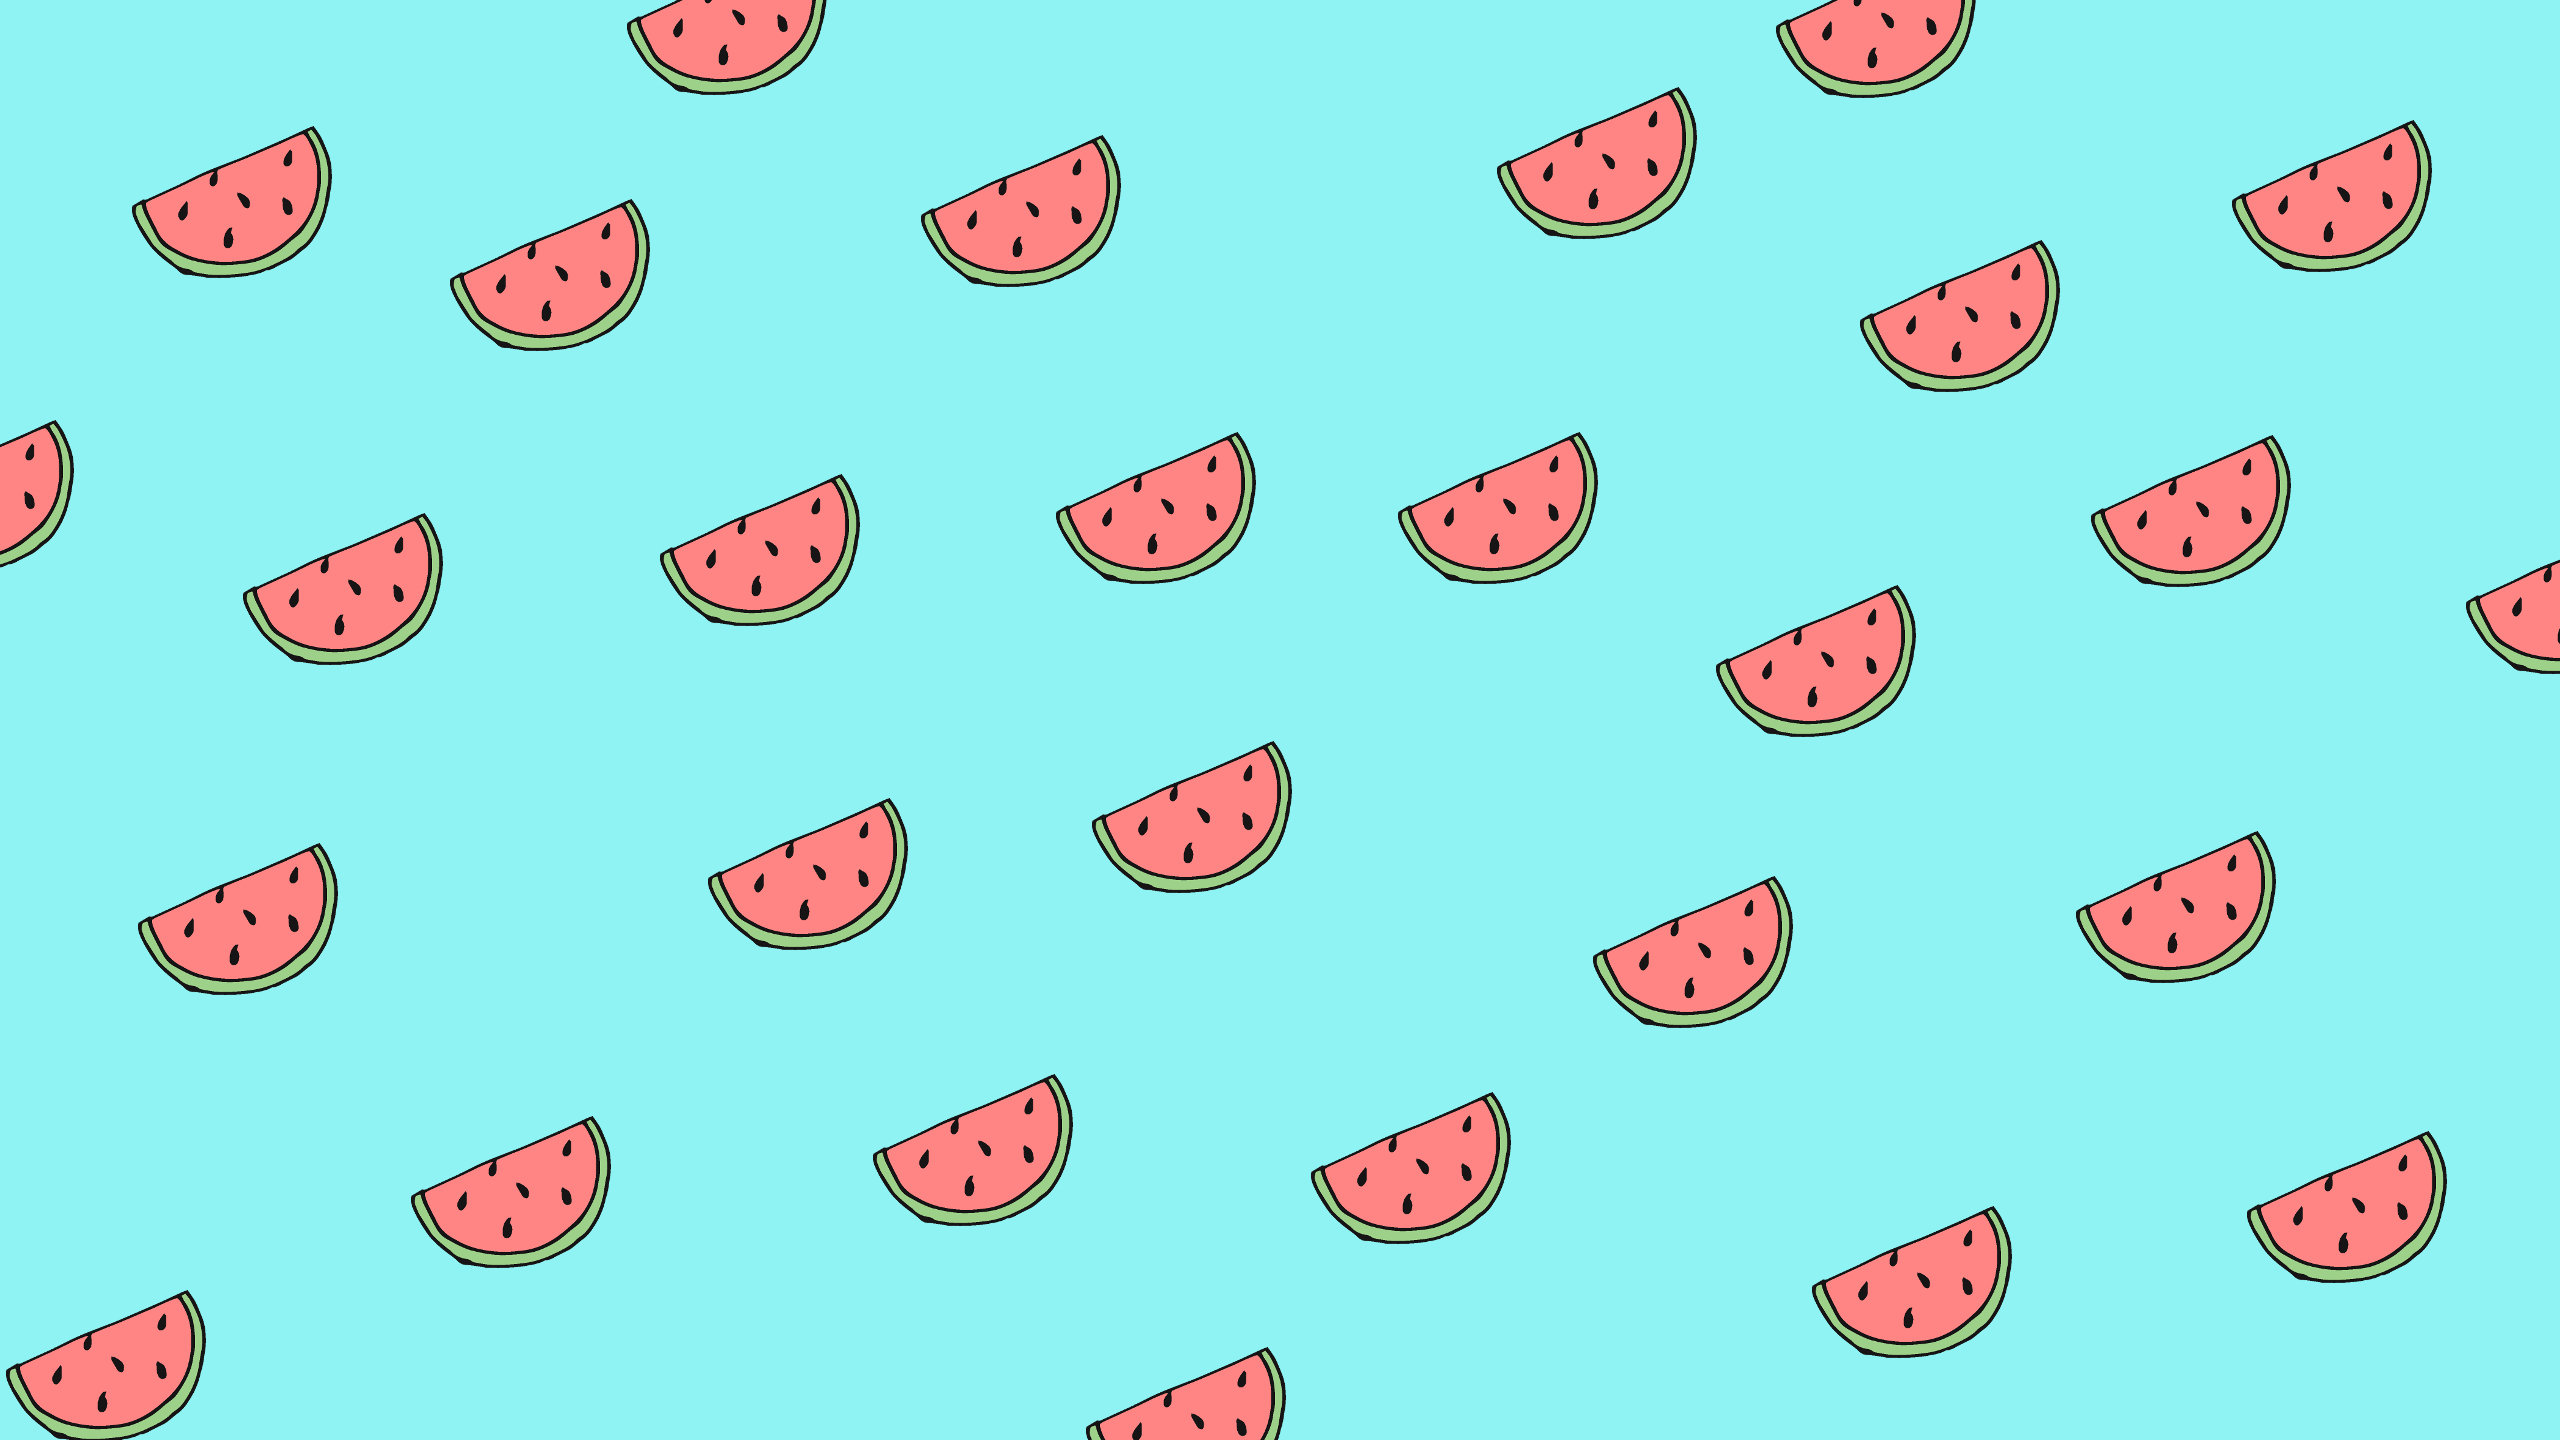 2560x1440 - Watermelon Wallpapers 32